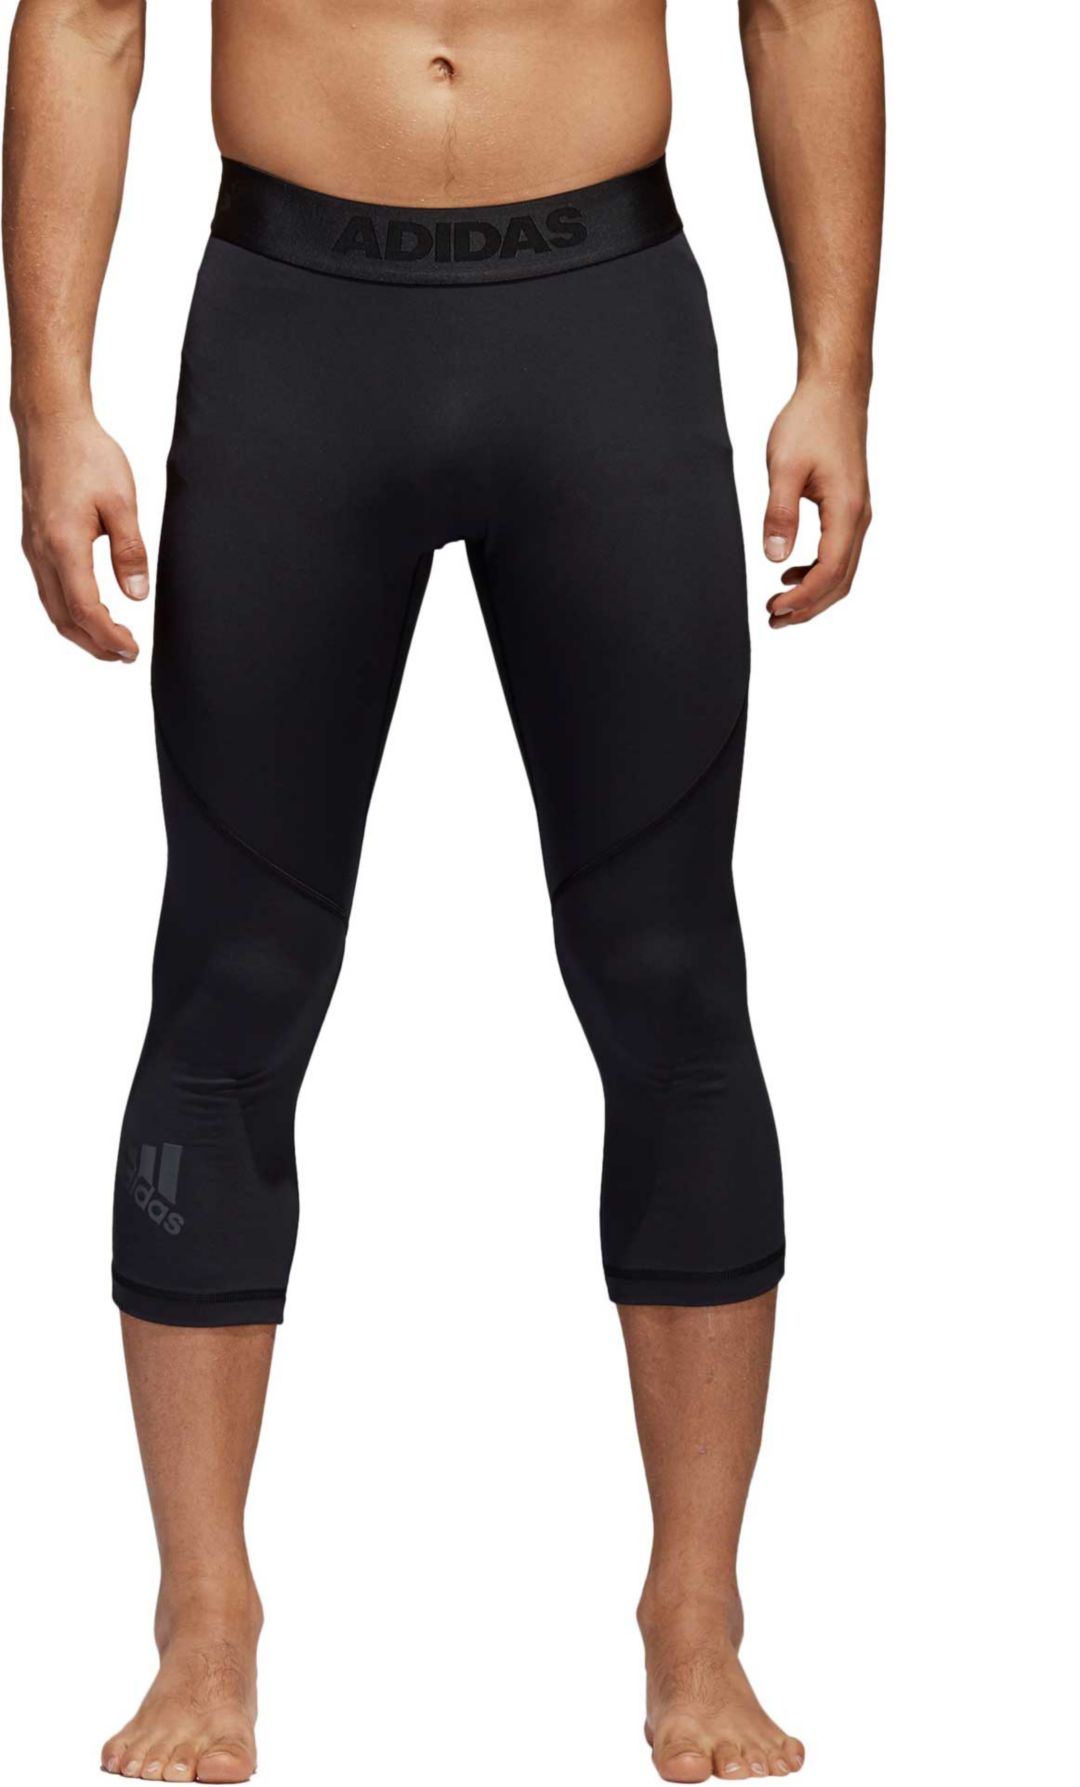 96a22c901bf666 adidas Men's Alphaskin 3/4 Training Tights | DICK'S Sporting Goods